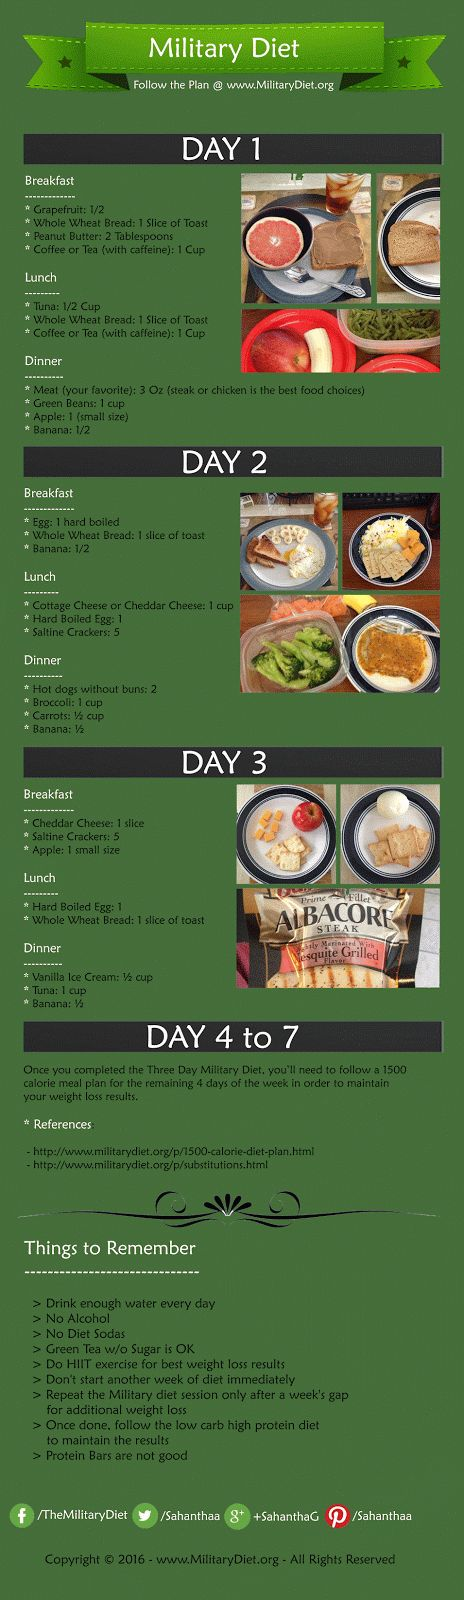 Military-Diet-Infographic.png 464×1,600 pixels More